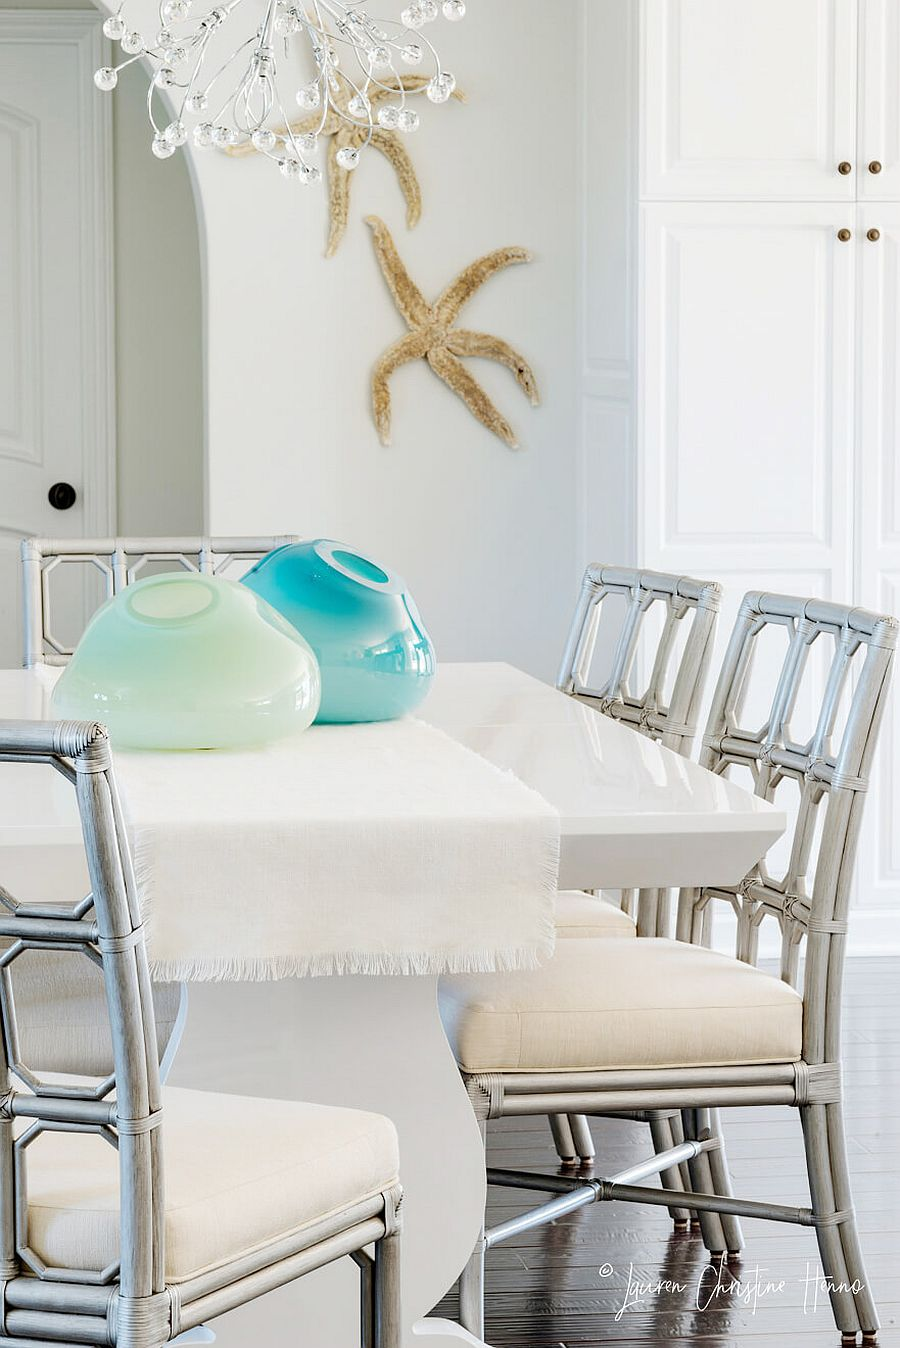 Coastal accents bring uniqueness to the dining space in white